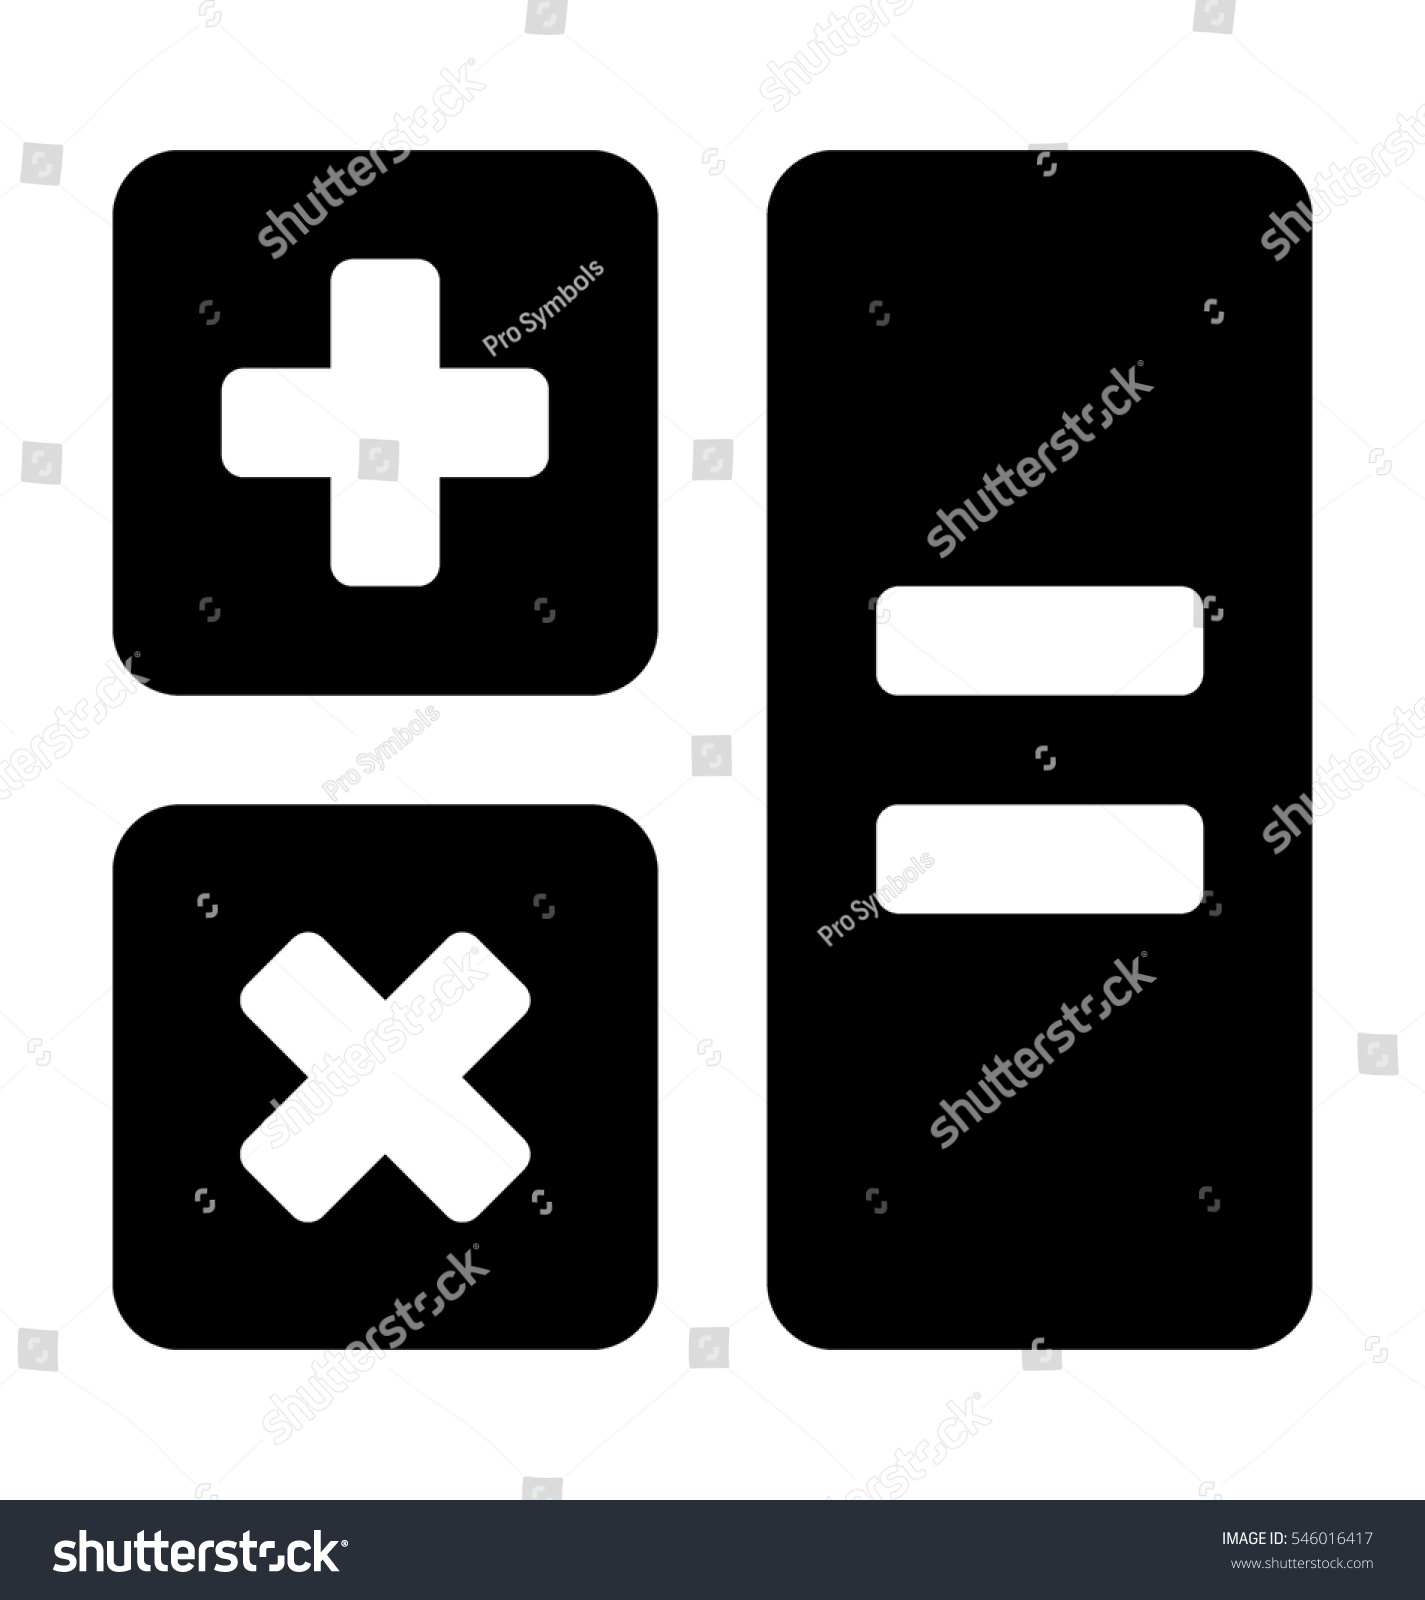 X maths symbol choice image symbols and meanings math symbols vector icon stock vector 546016417 shutterstock math symbols vector icon biocorpaavc biocorpaavc Image collections